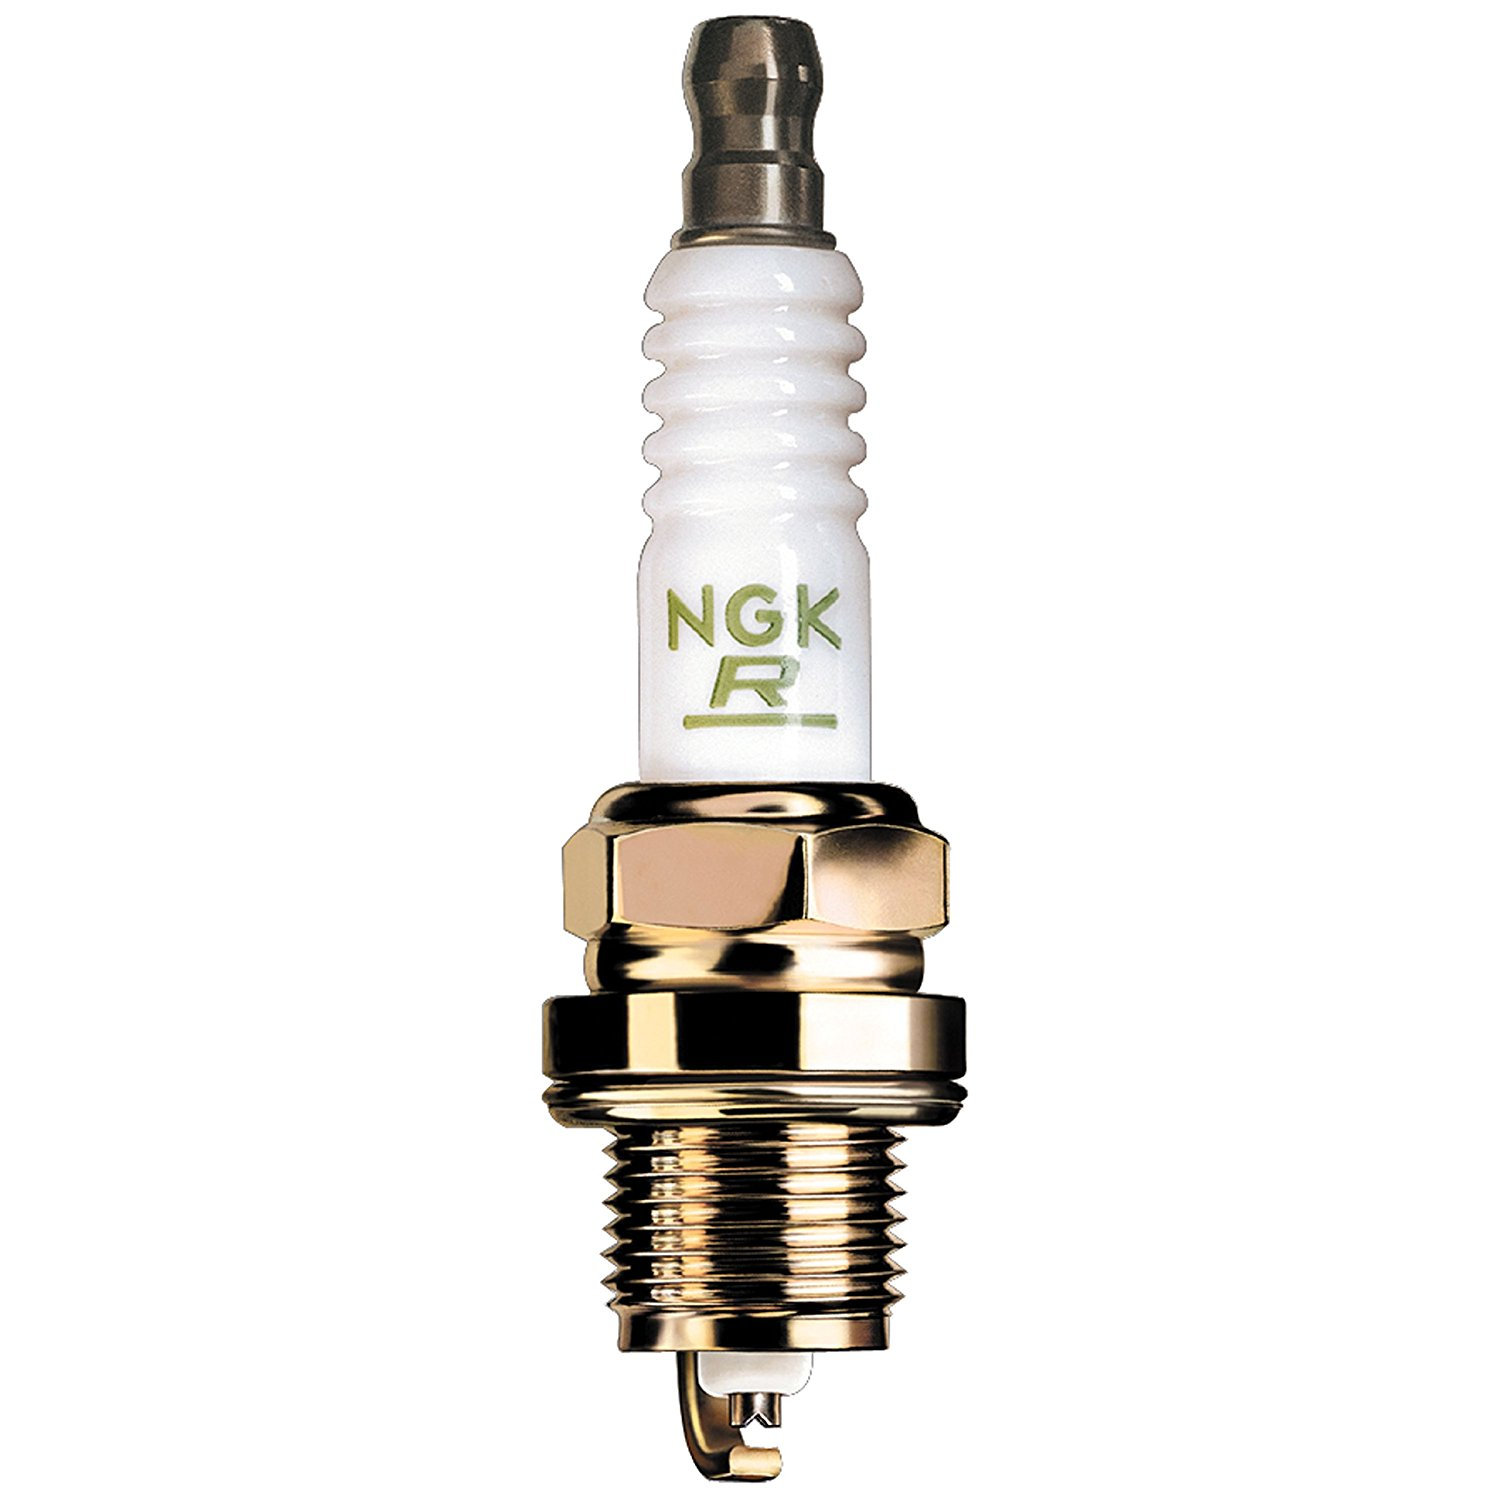 (5531) DPR6EA-9 Standard Spark Plug, Pack of 1Patented triple gasket sealing process eliminates the... by NGK Spark Plugs